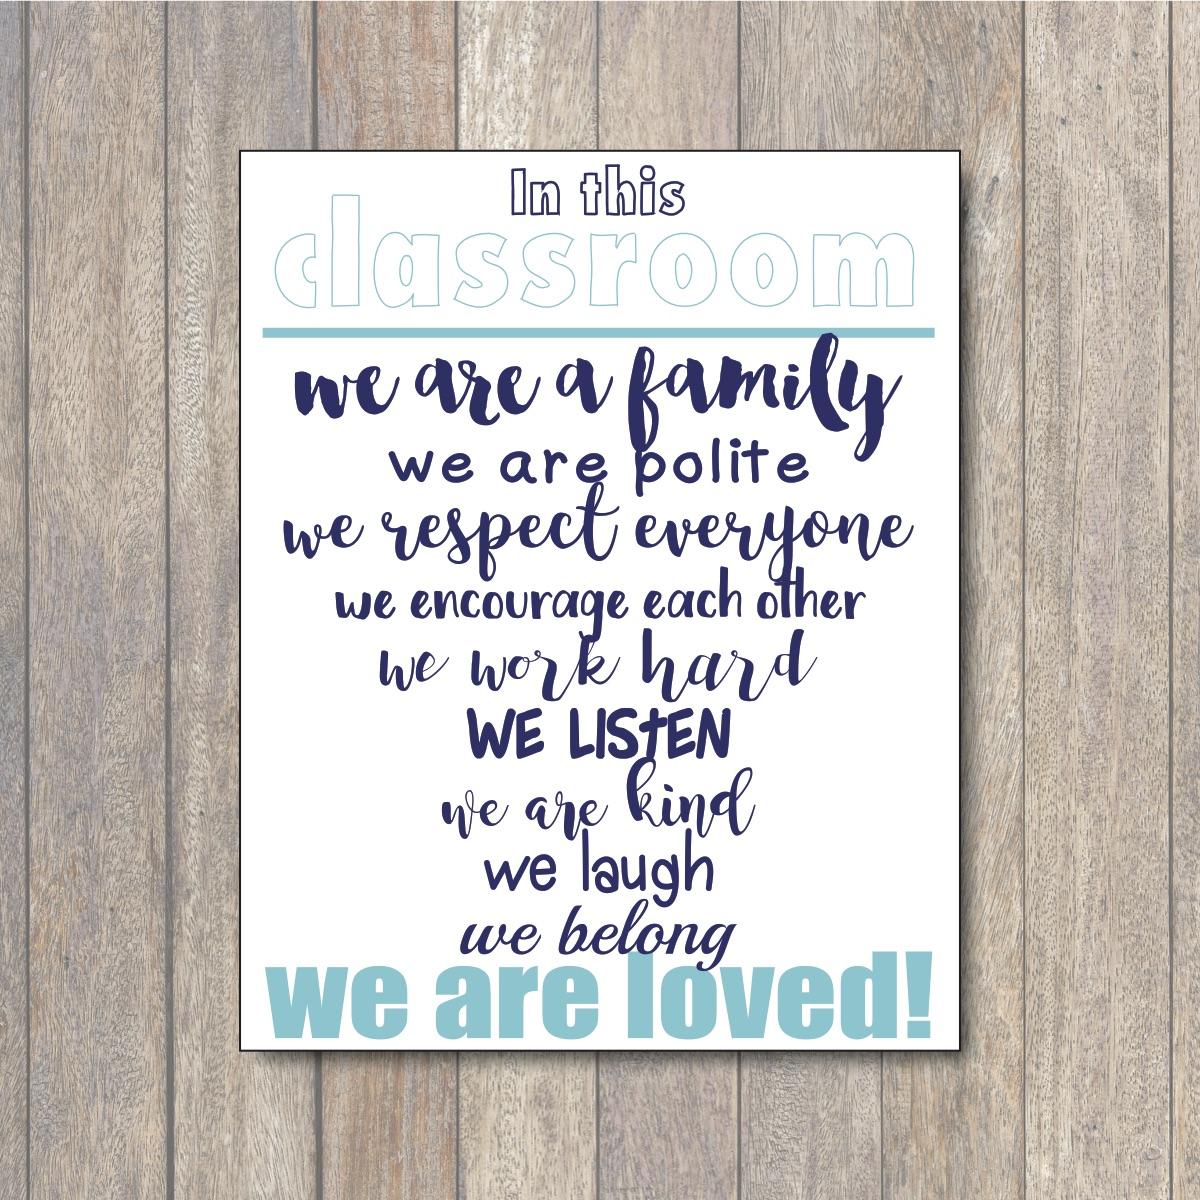 photo regarding Printable Sign known as In just This Clroom Printable Indicator - Each day Social gathering Journal